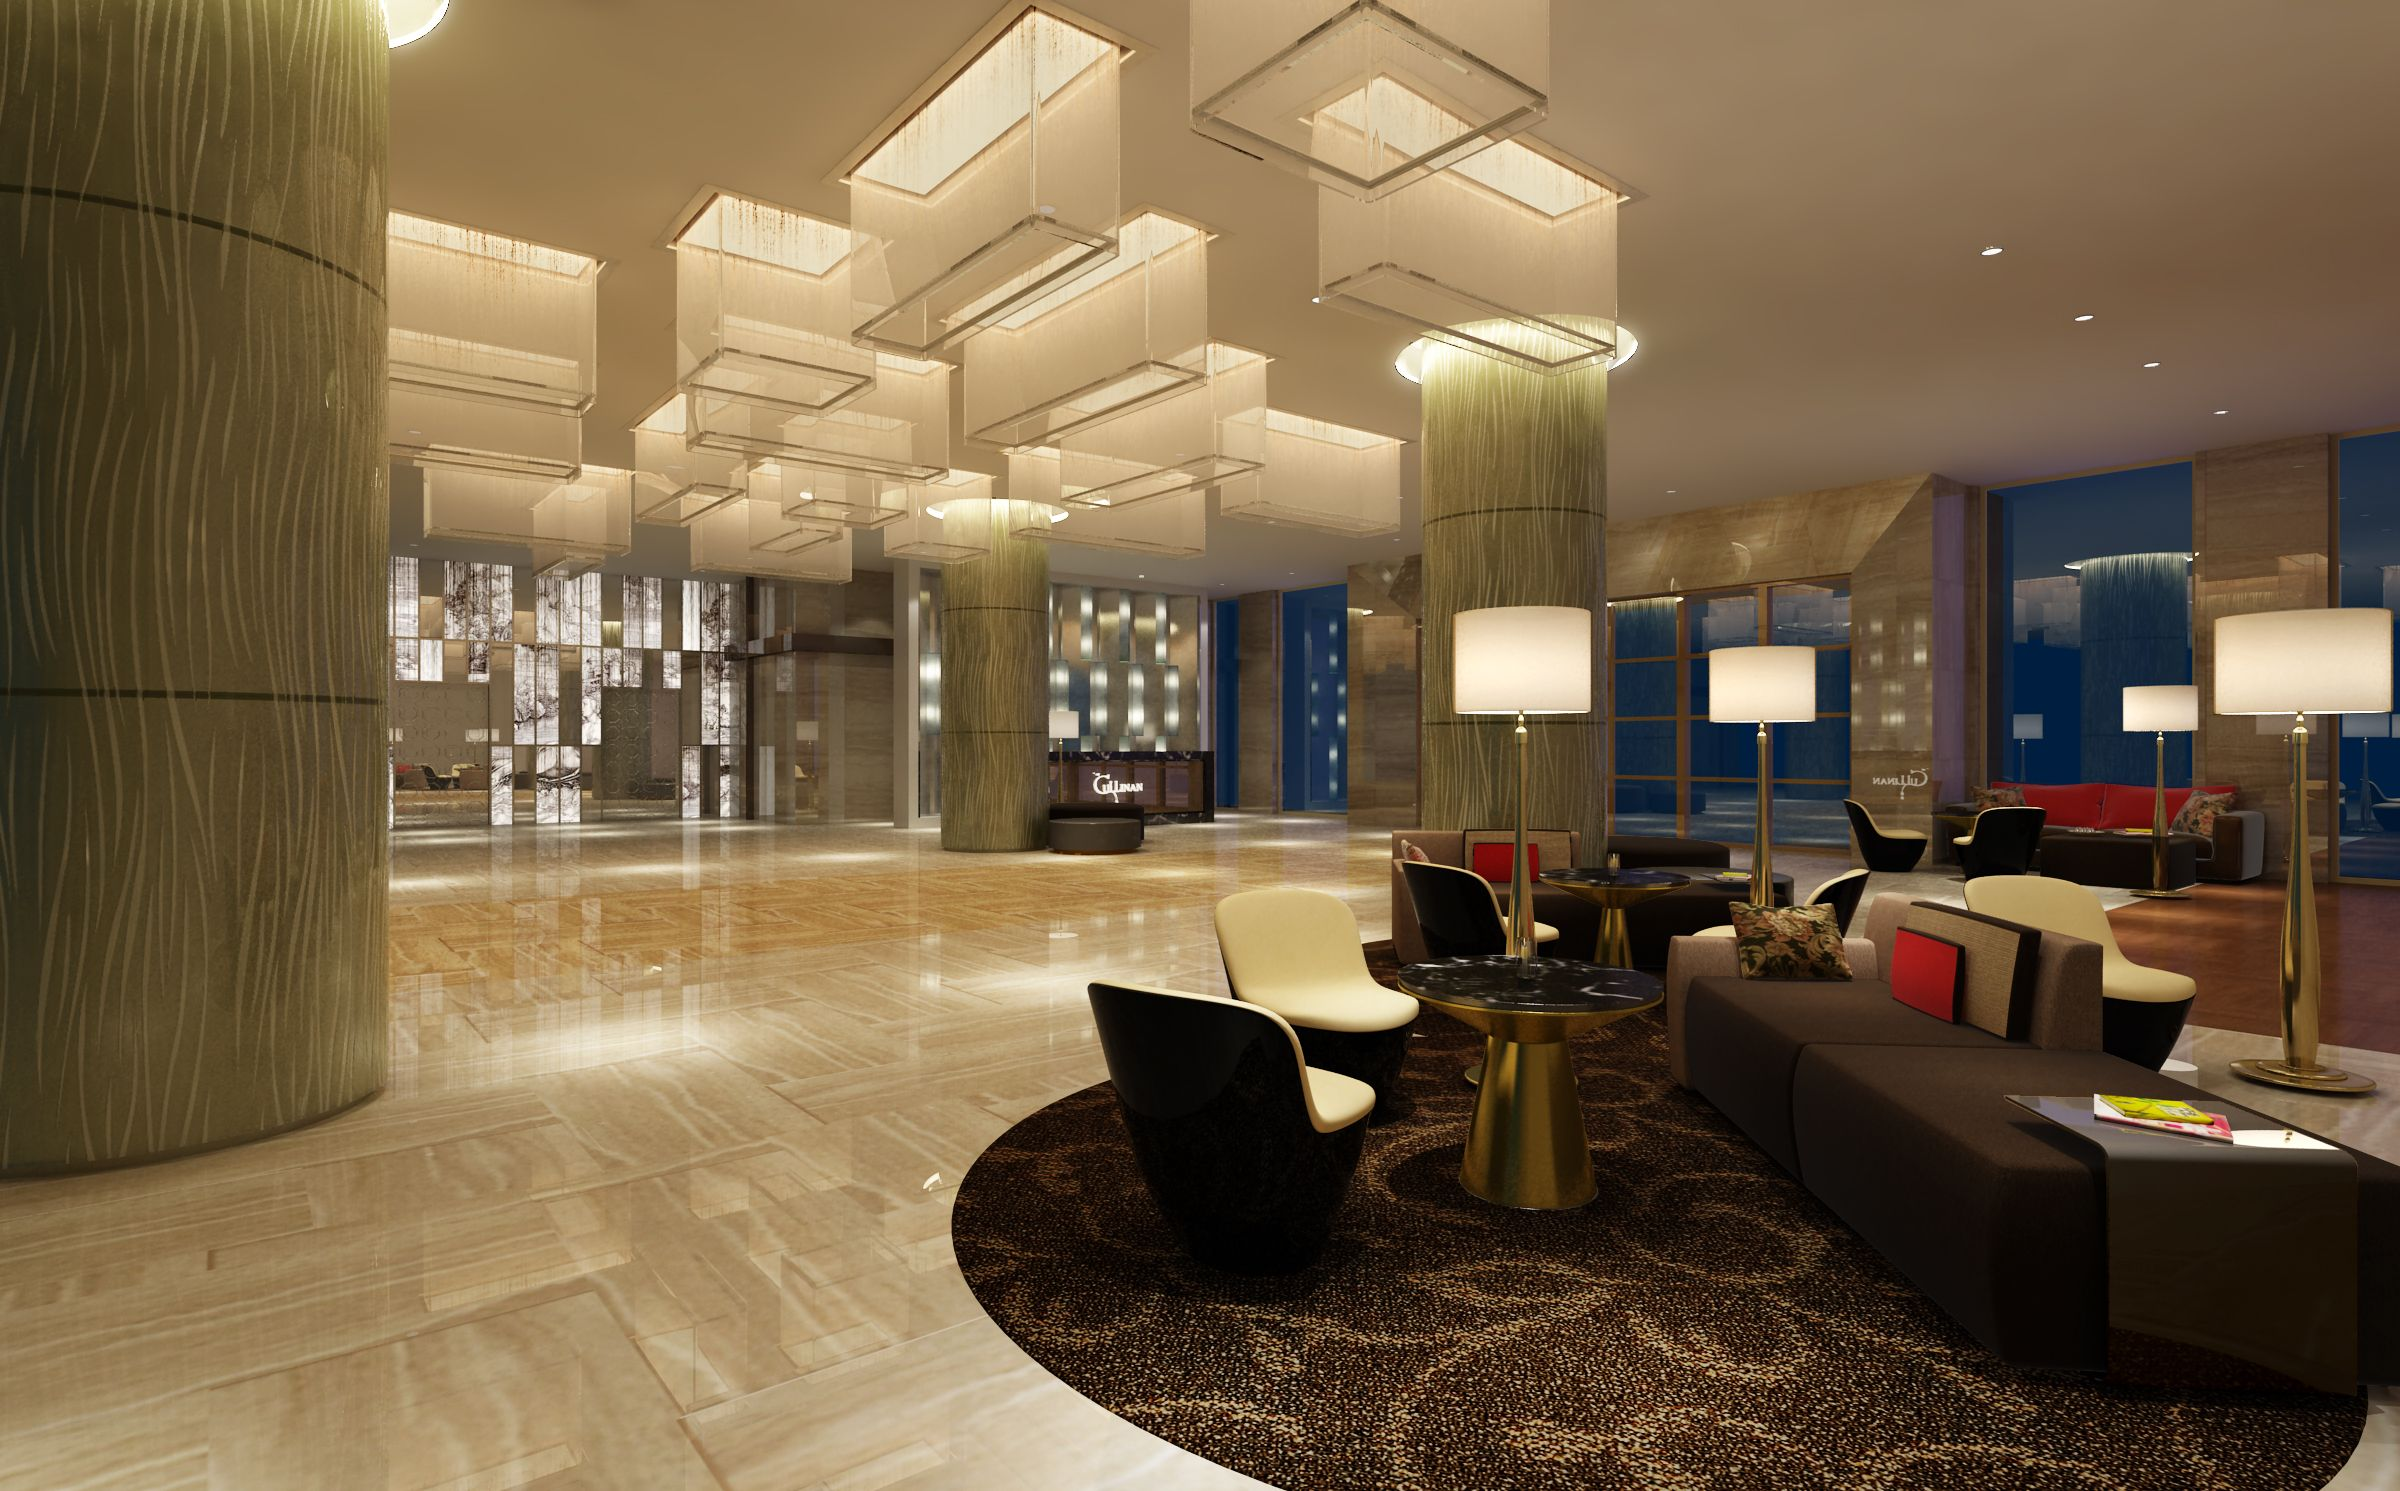 Modern hotel lobby interior design architecture hotel for Modern hotel design